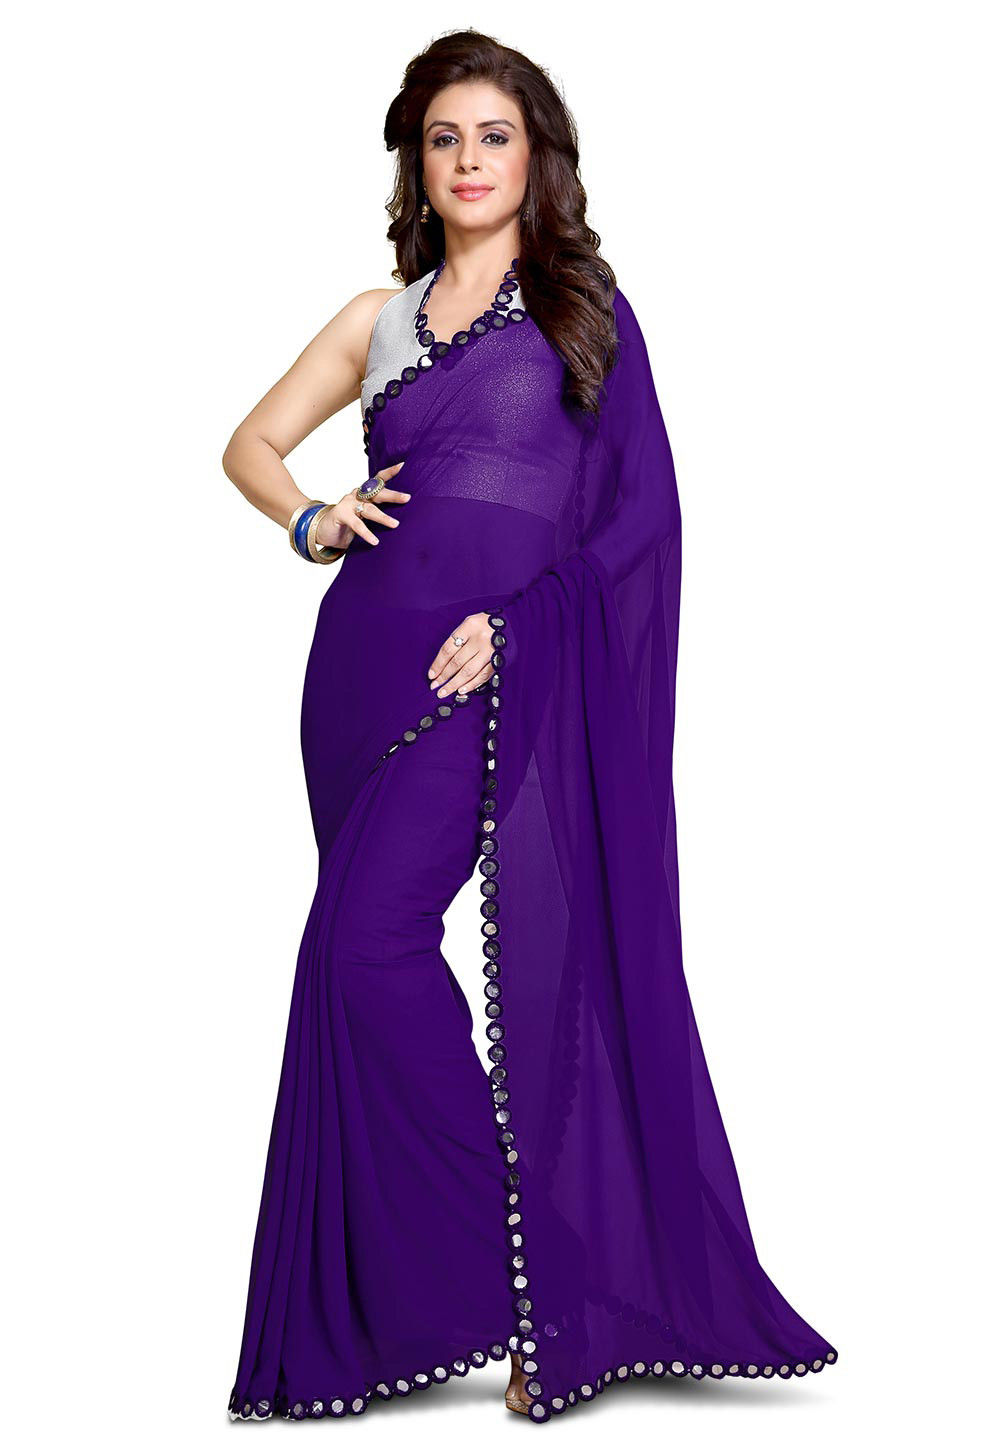 Lace Border Georgette Saree in Violet